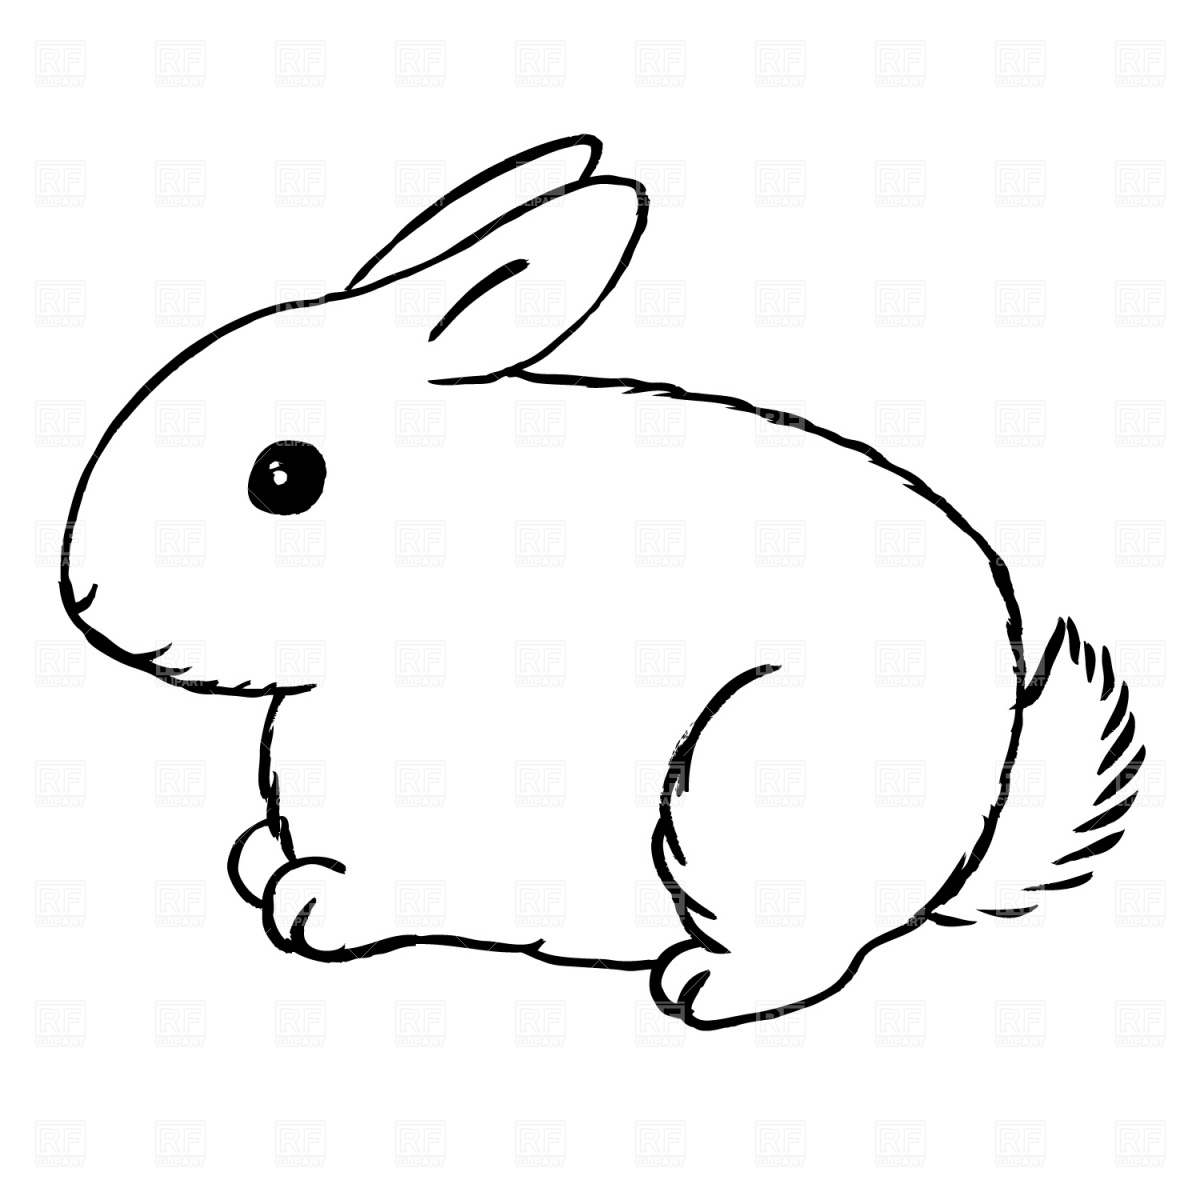 1200x1200 Bunny Clipart Black And White Free Clipart Images 2